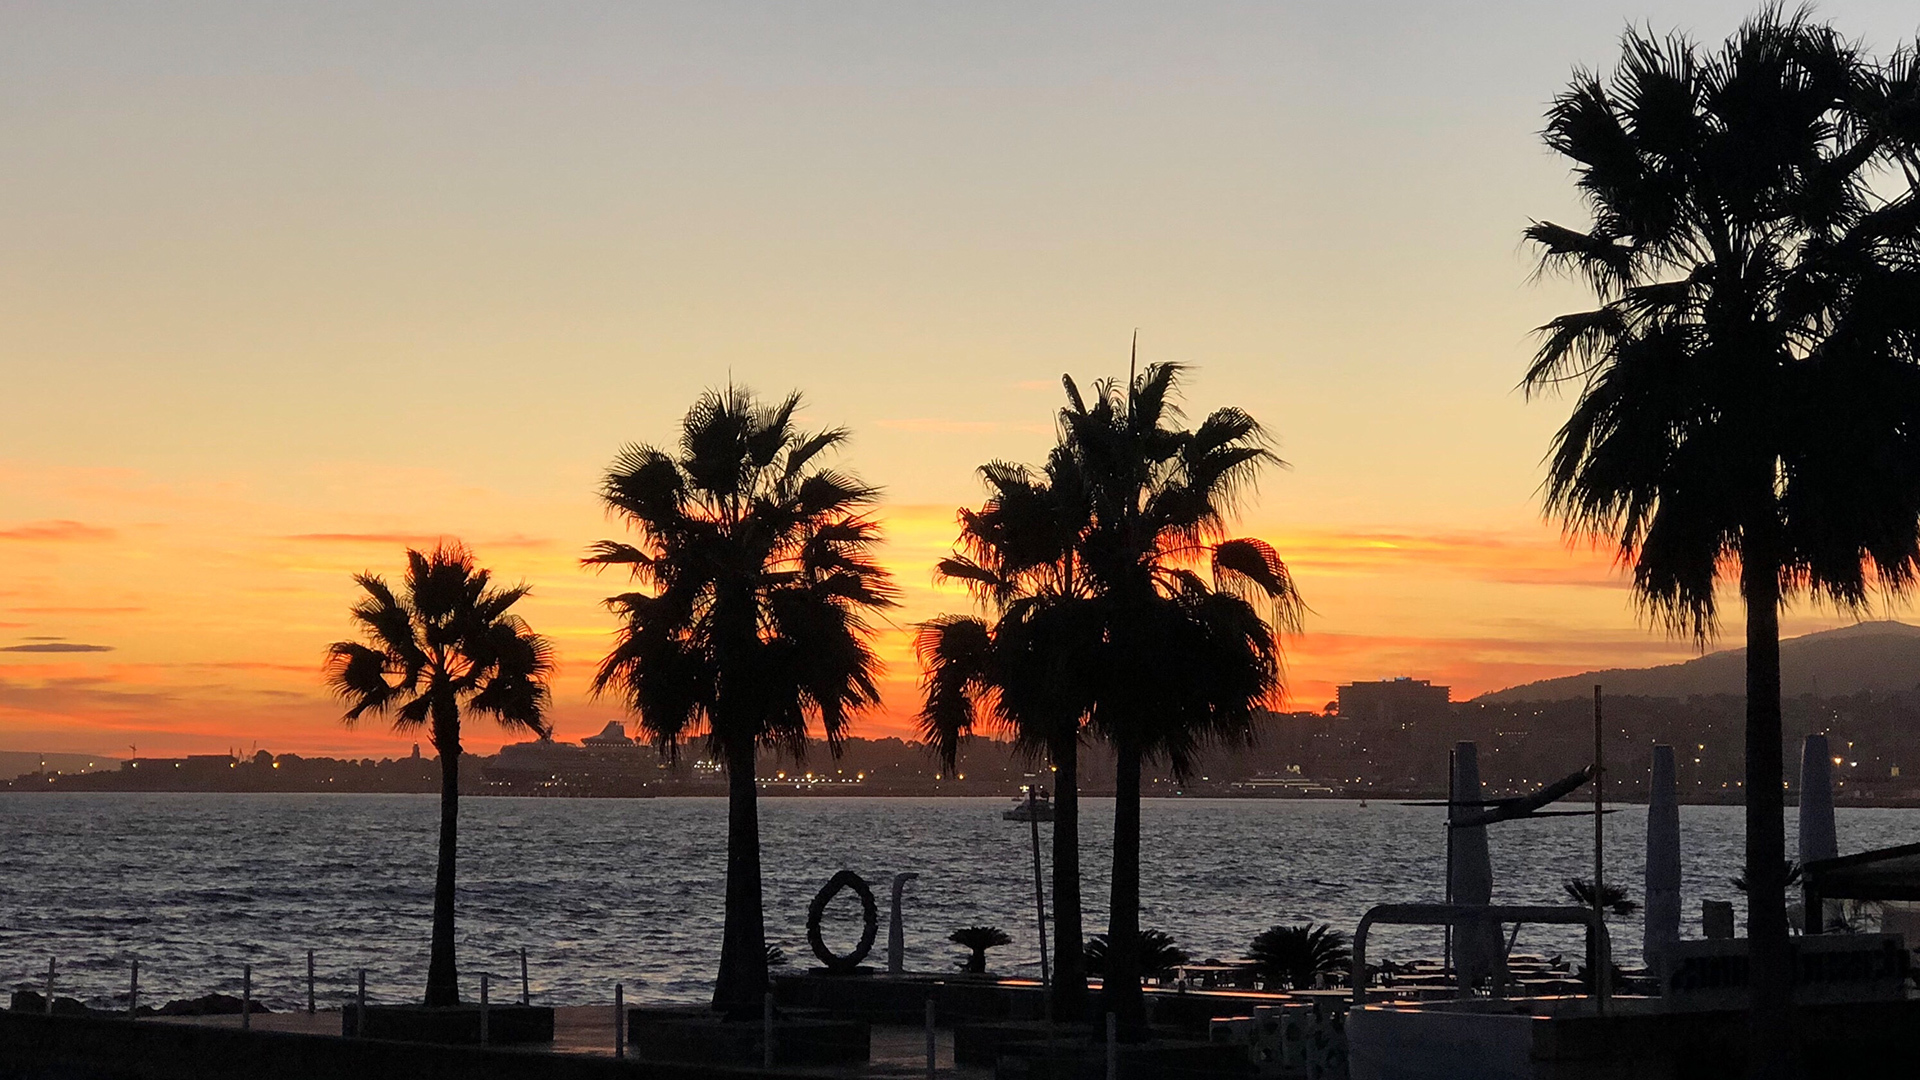 Sunset palmtrees palma beach Photo Adele Chretien